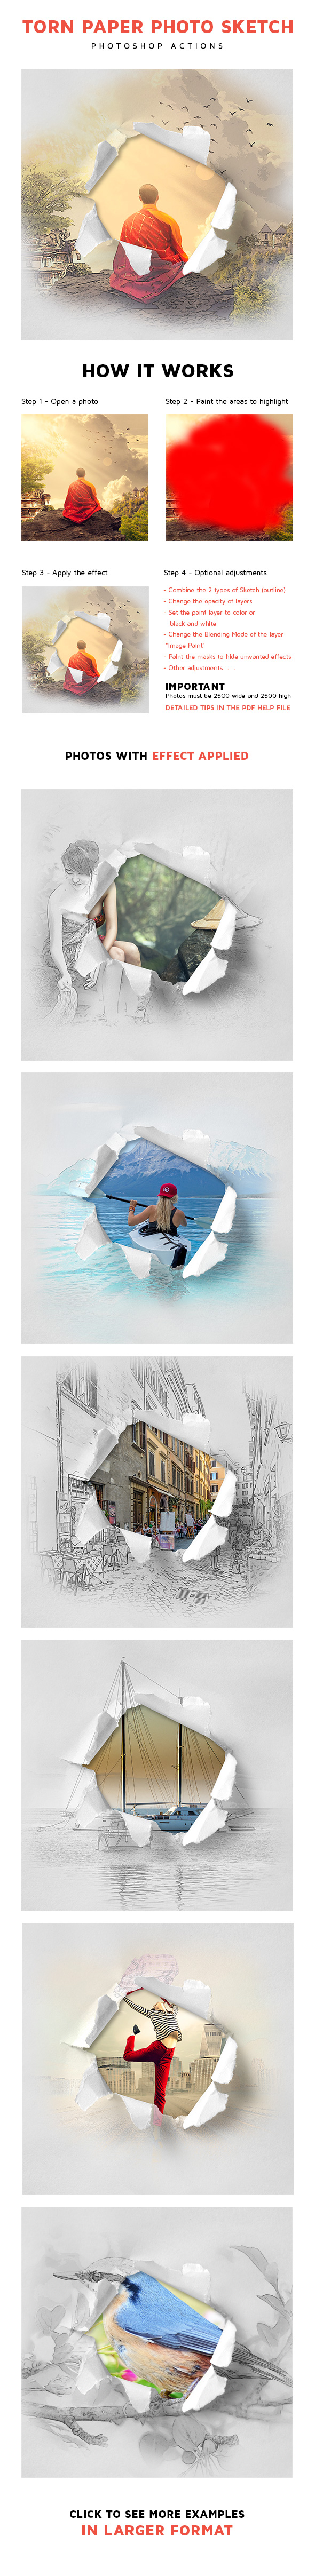 GraphicRiver Torn Paper Photo Sketch 20989015